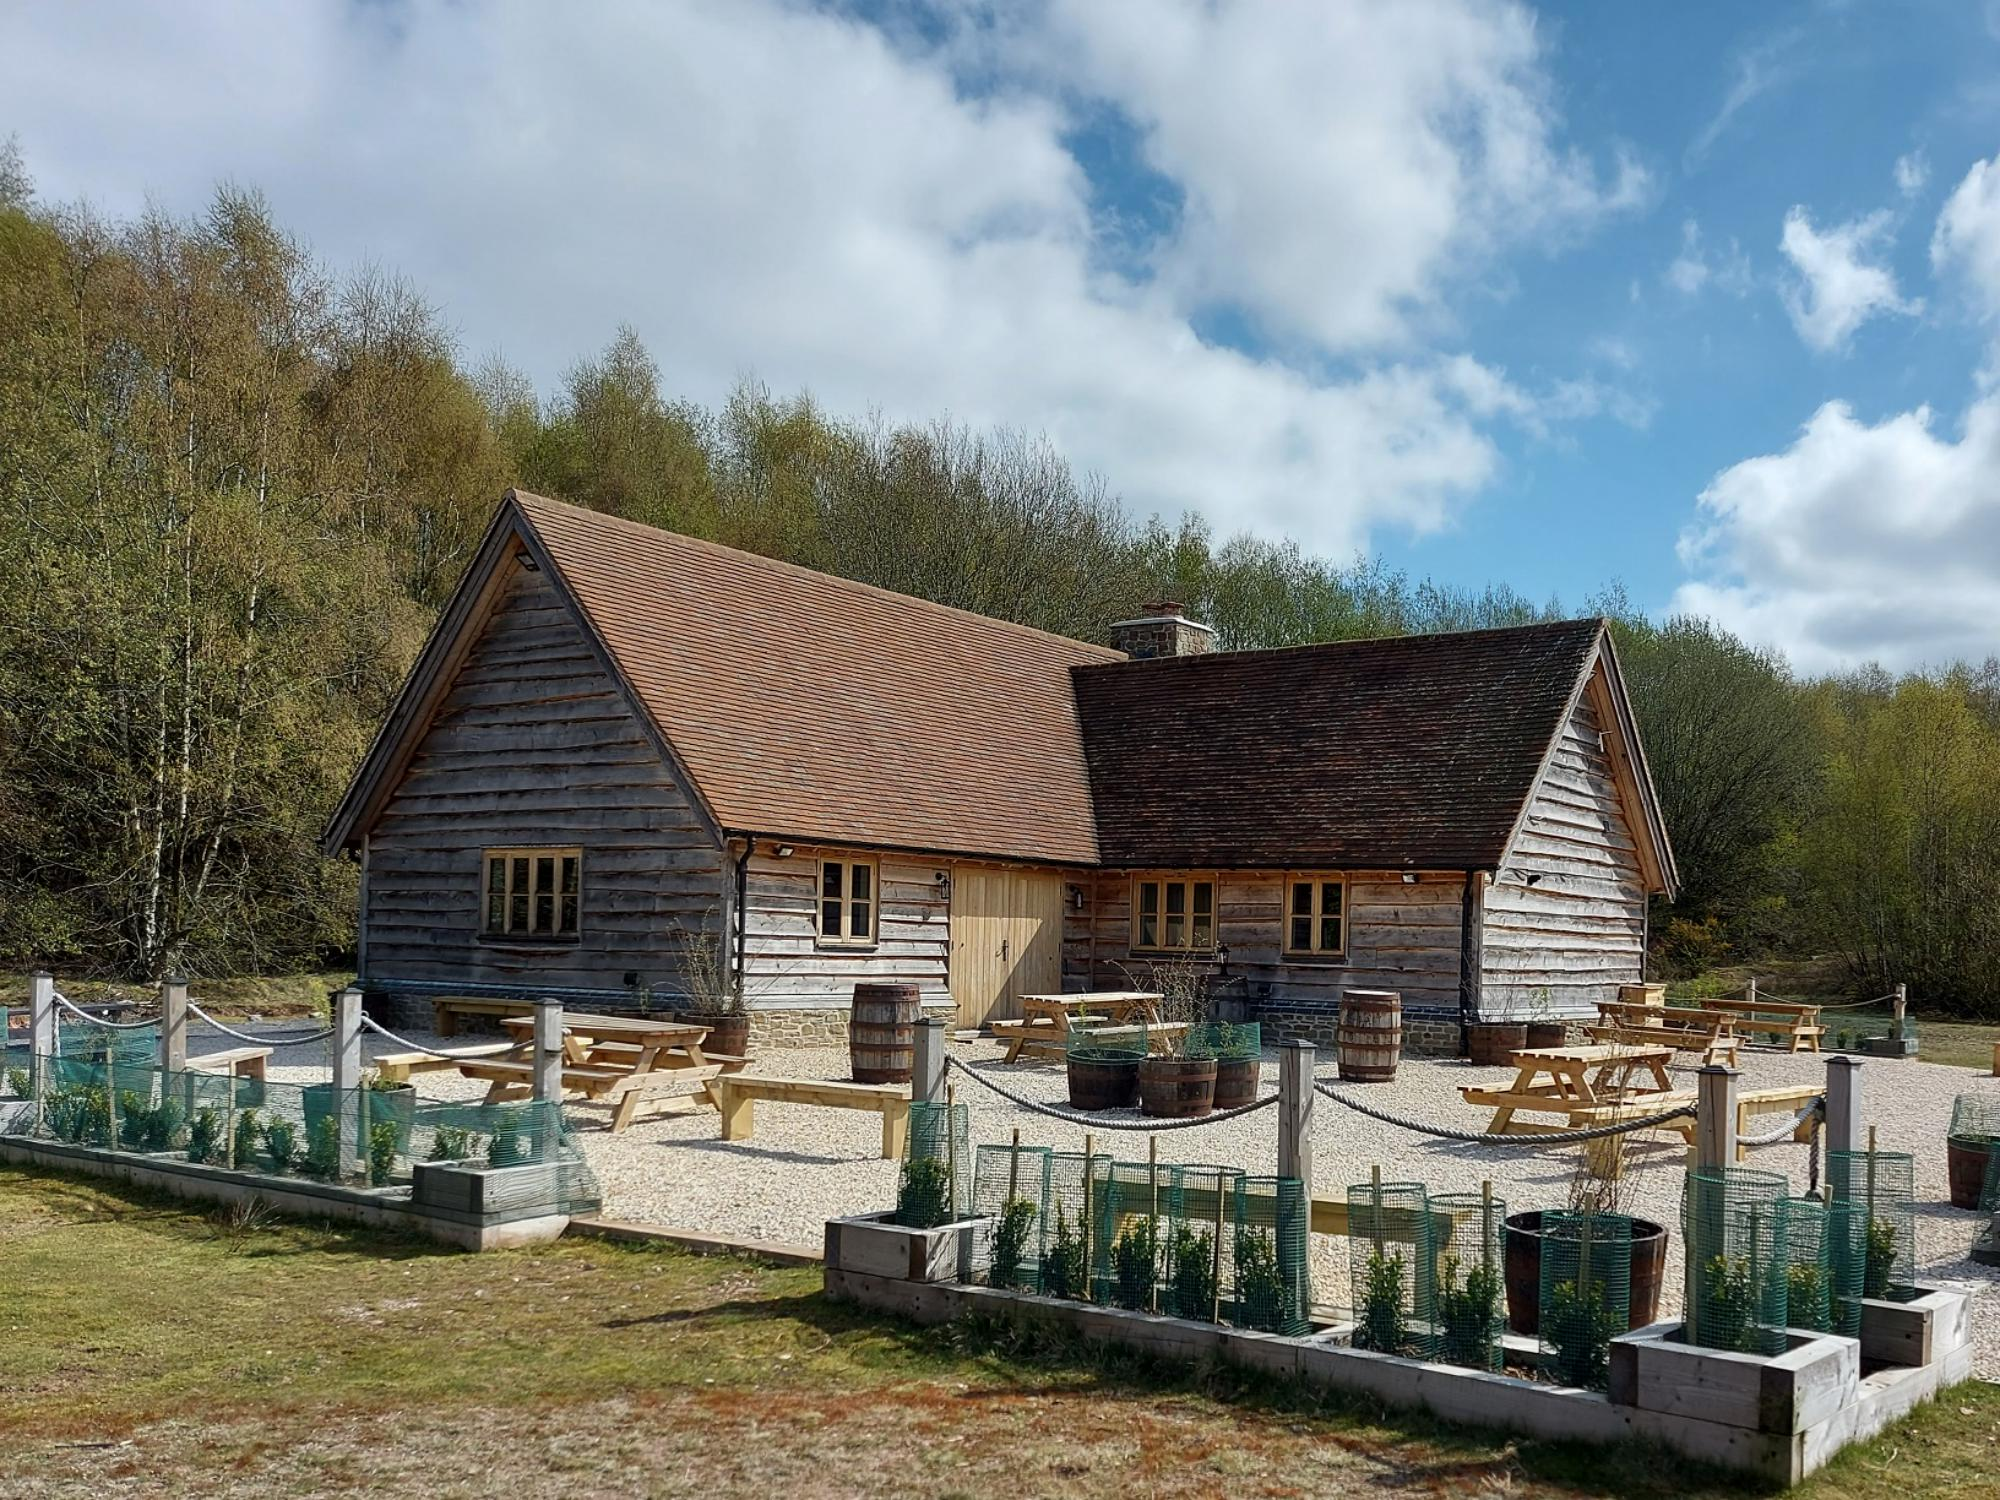 Self-Catering in West Midlands holidays at Cool Places